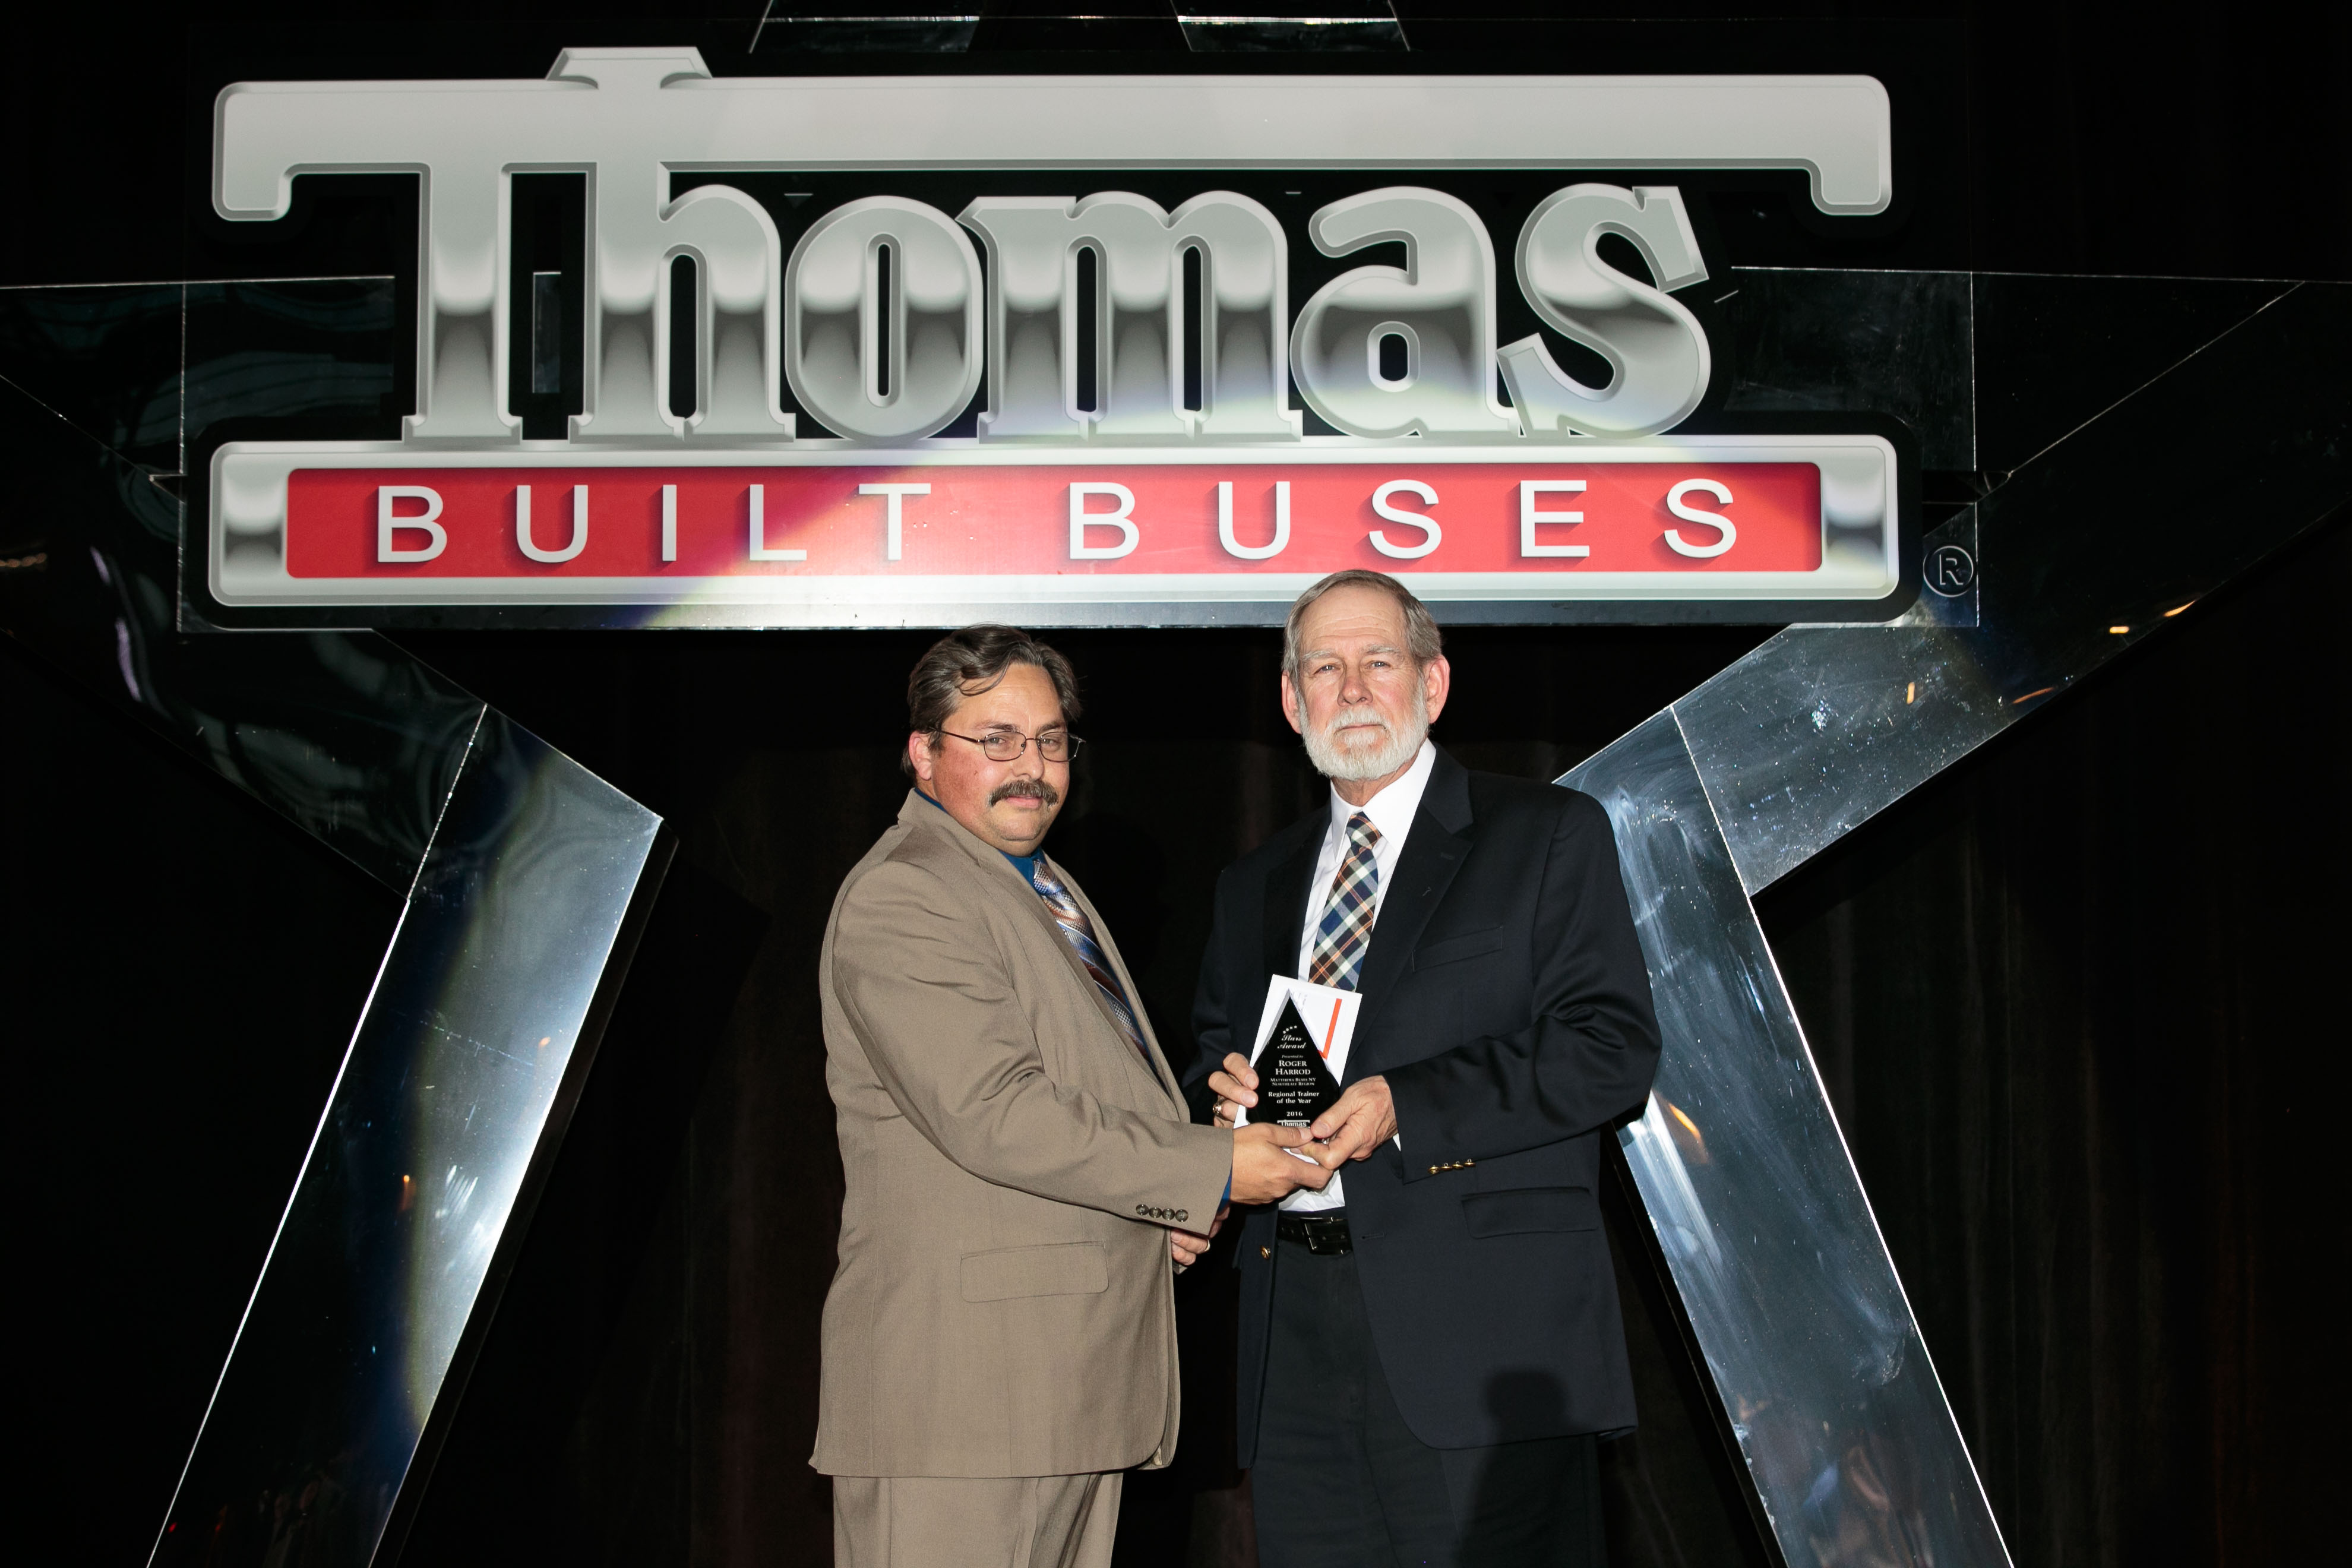 Roger Harrod Named Northeast Region Trainer of the Year by Thomas Built Buses